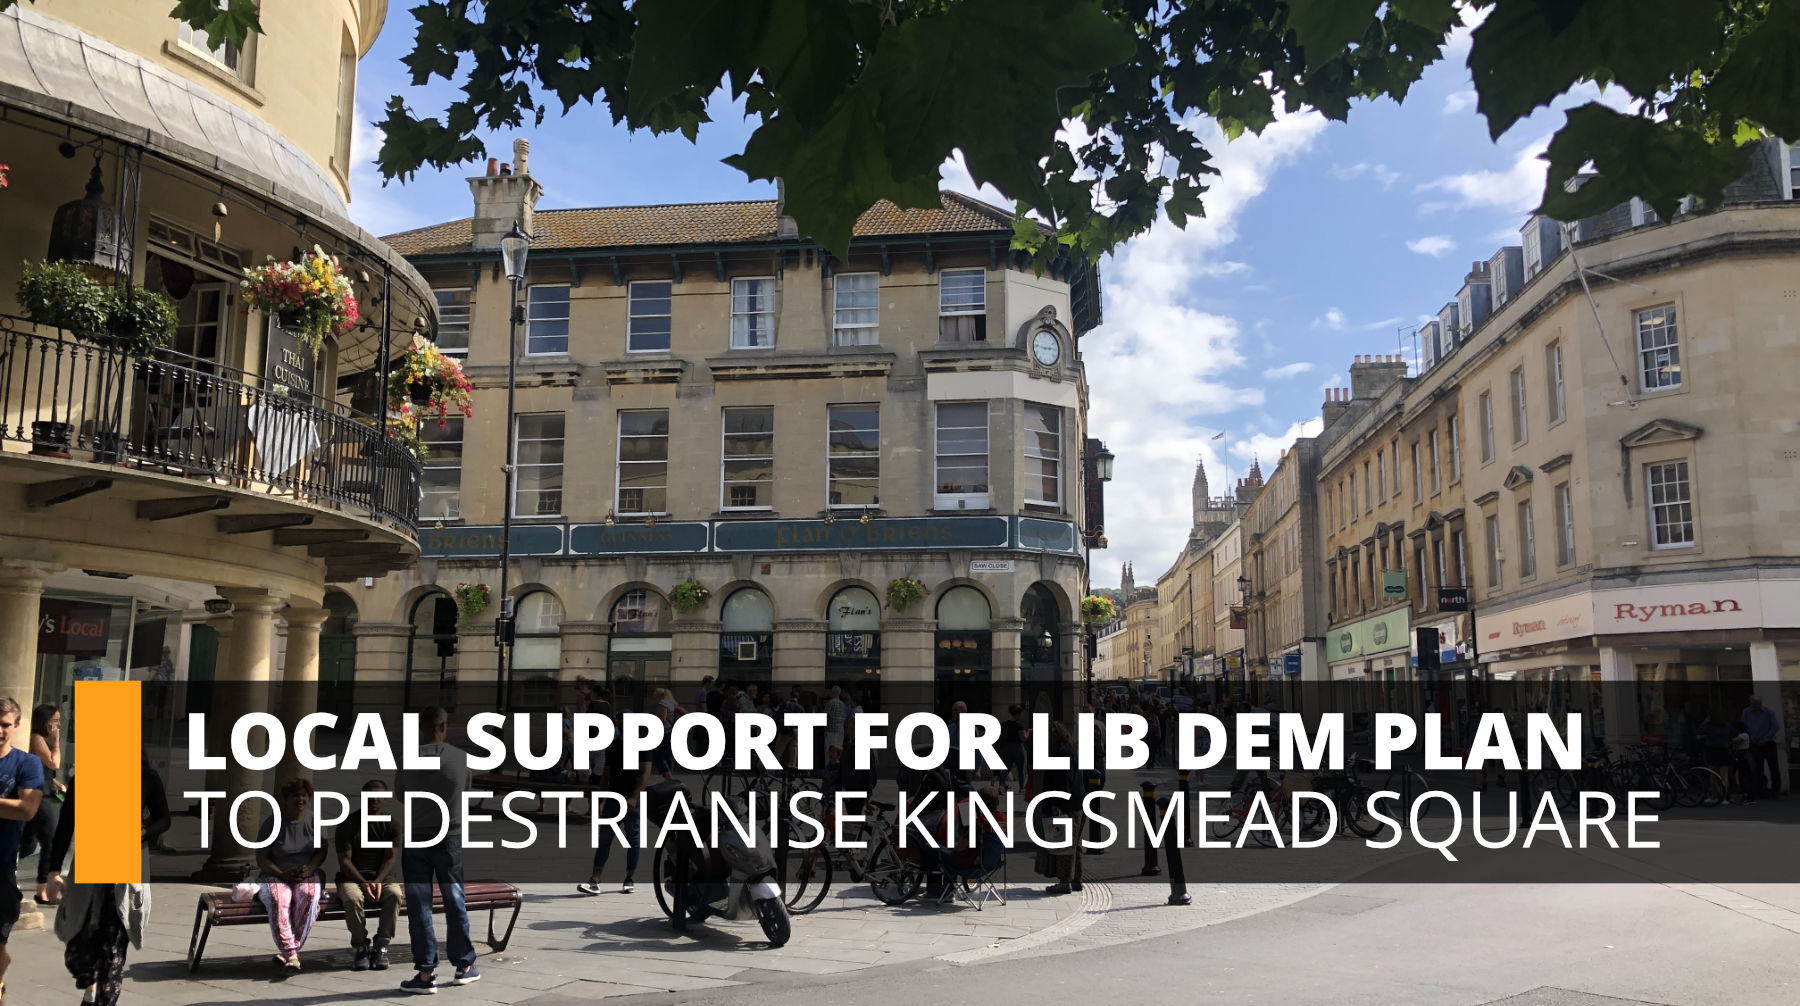 Local support for Lib Dem plan to pedestrianise Kingsmead Square.